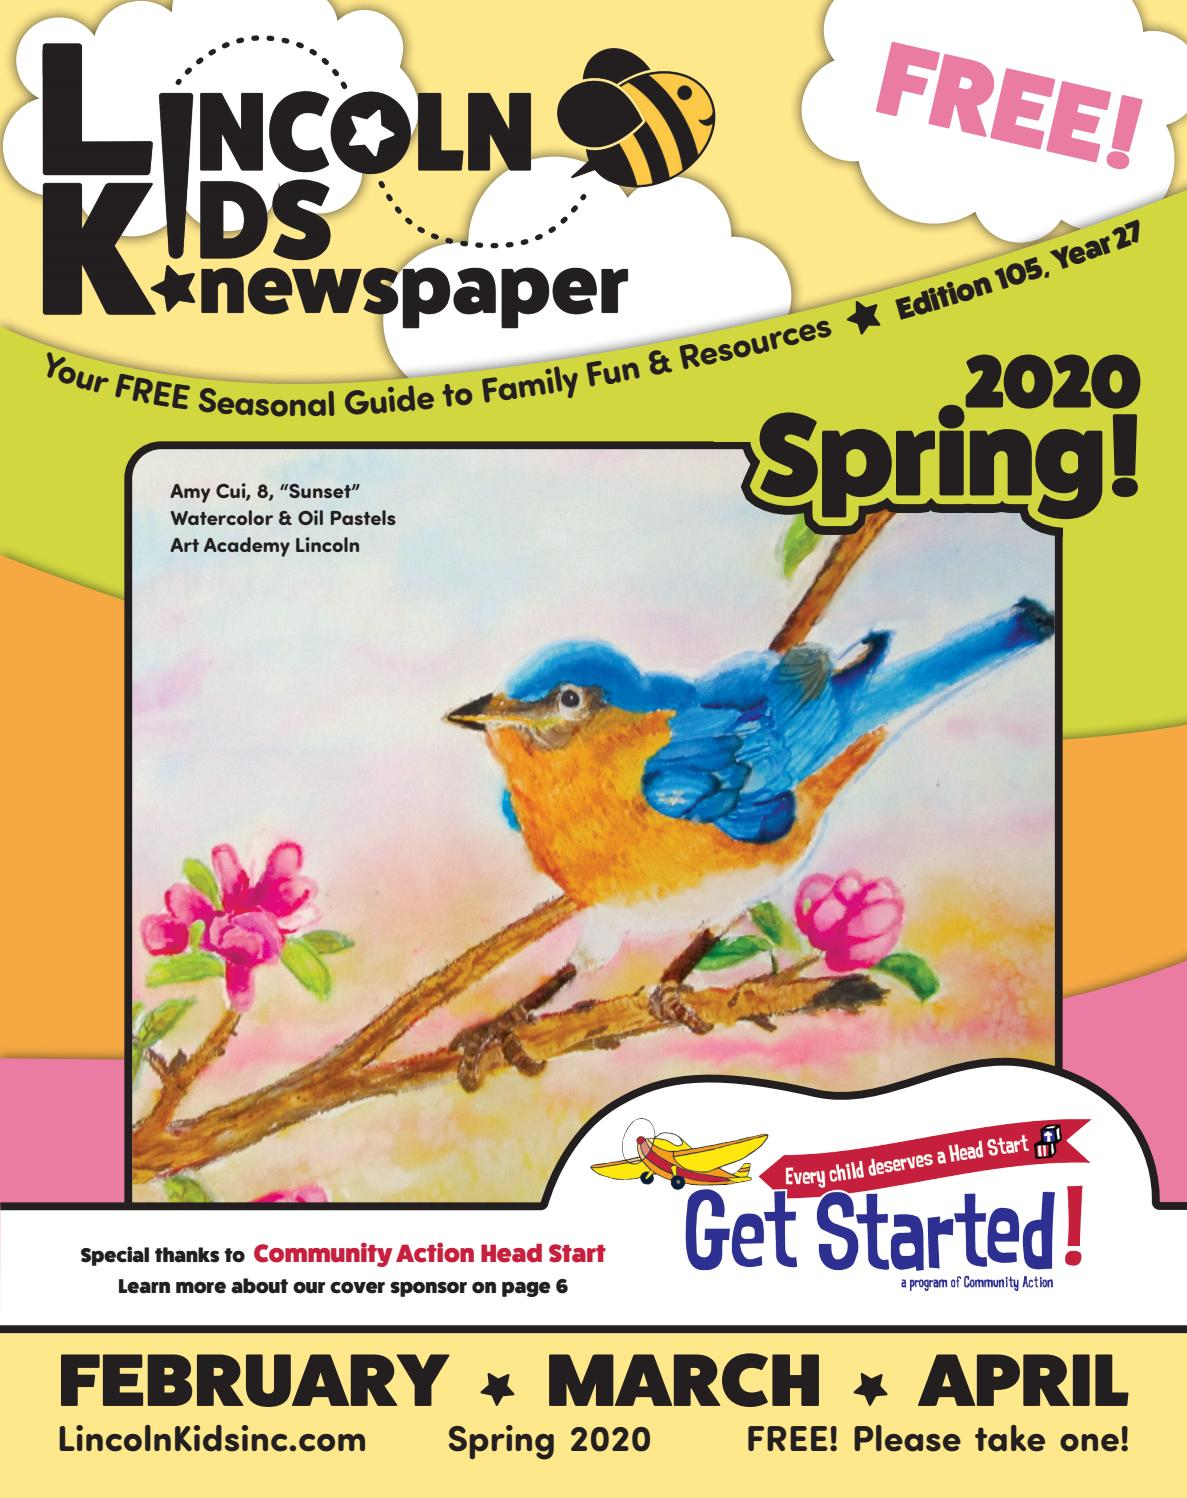 small wonders wooden letter wall deor letter k baby.htm lincoln kids  newspaper     spring 2020     february  march  april by  lincoln kids  newspaper     spring 2020